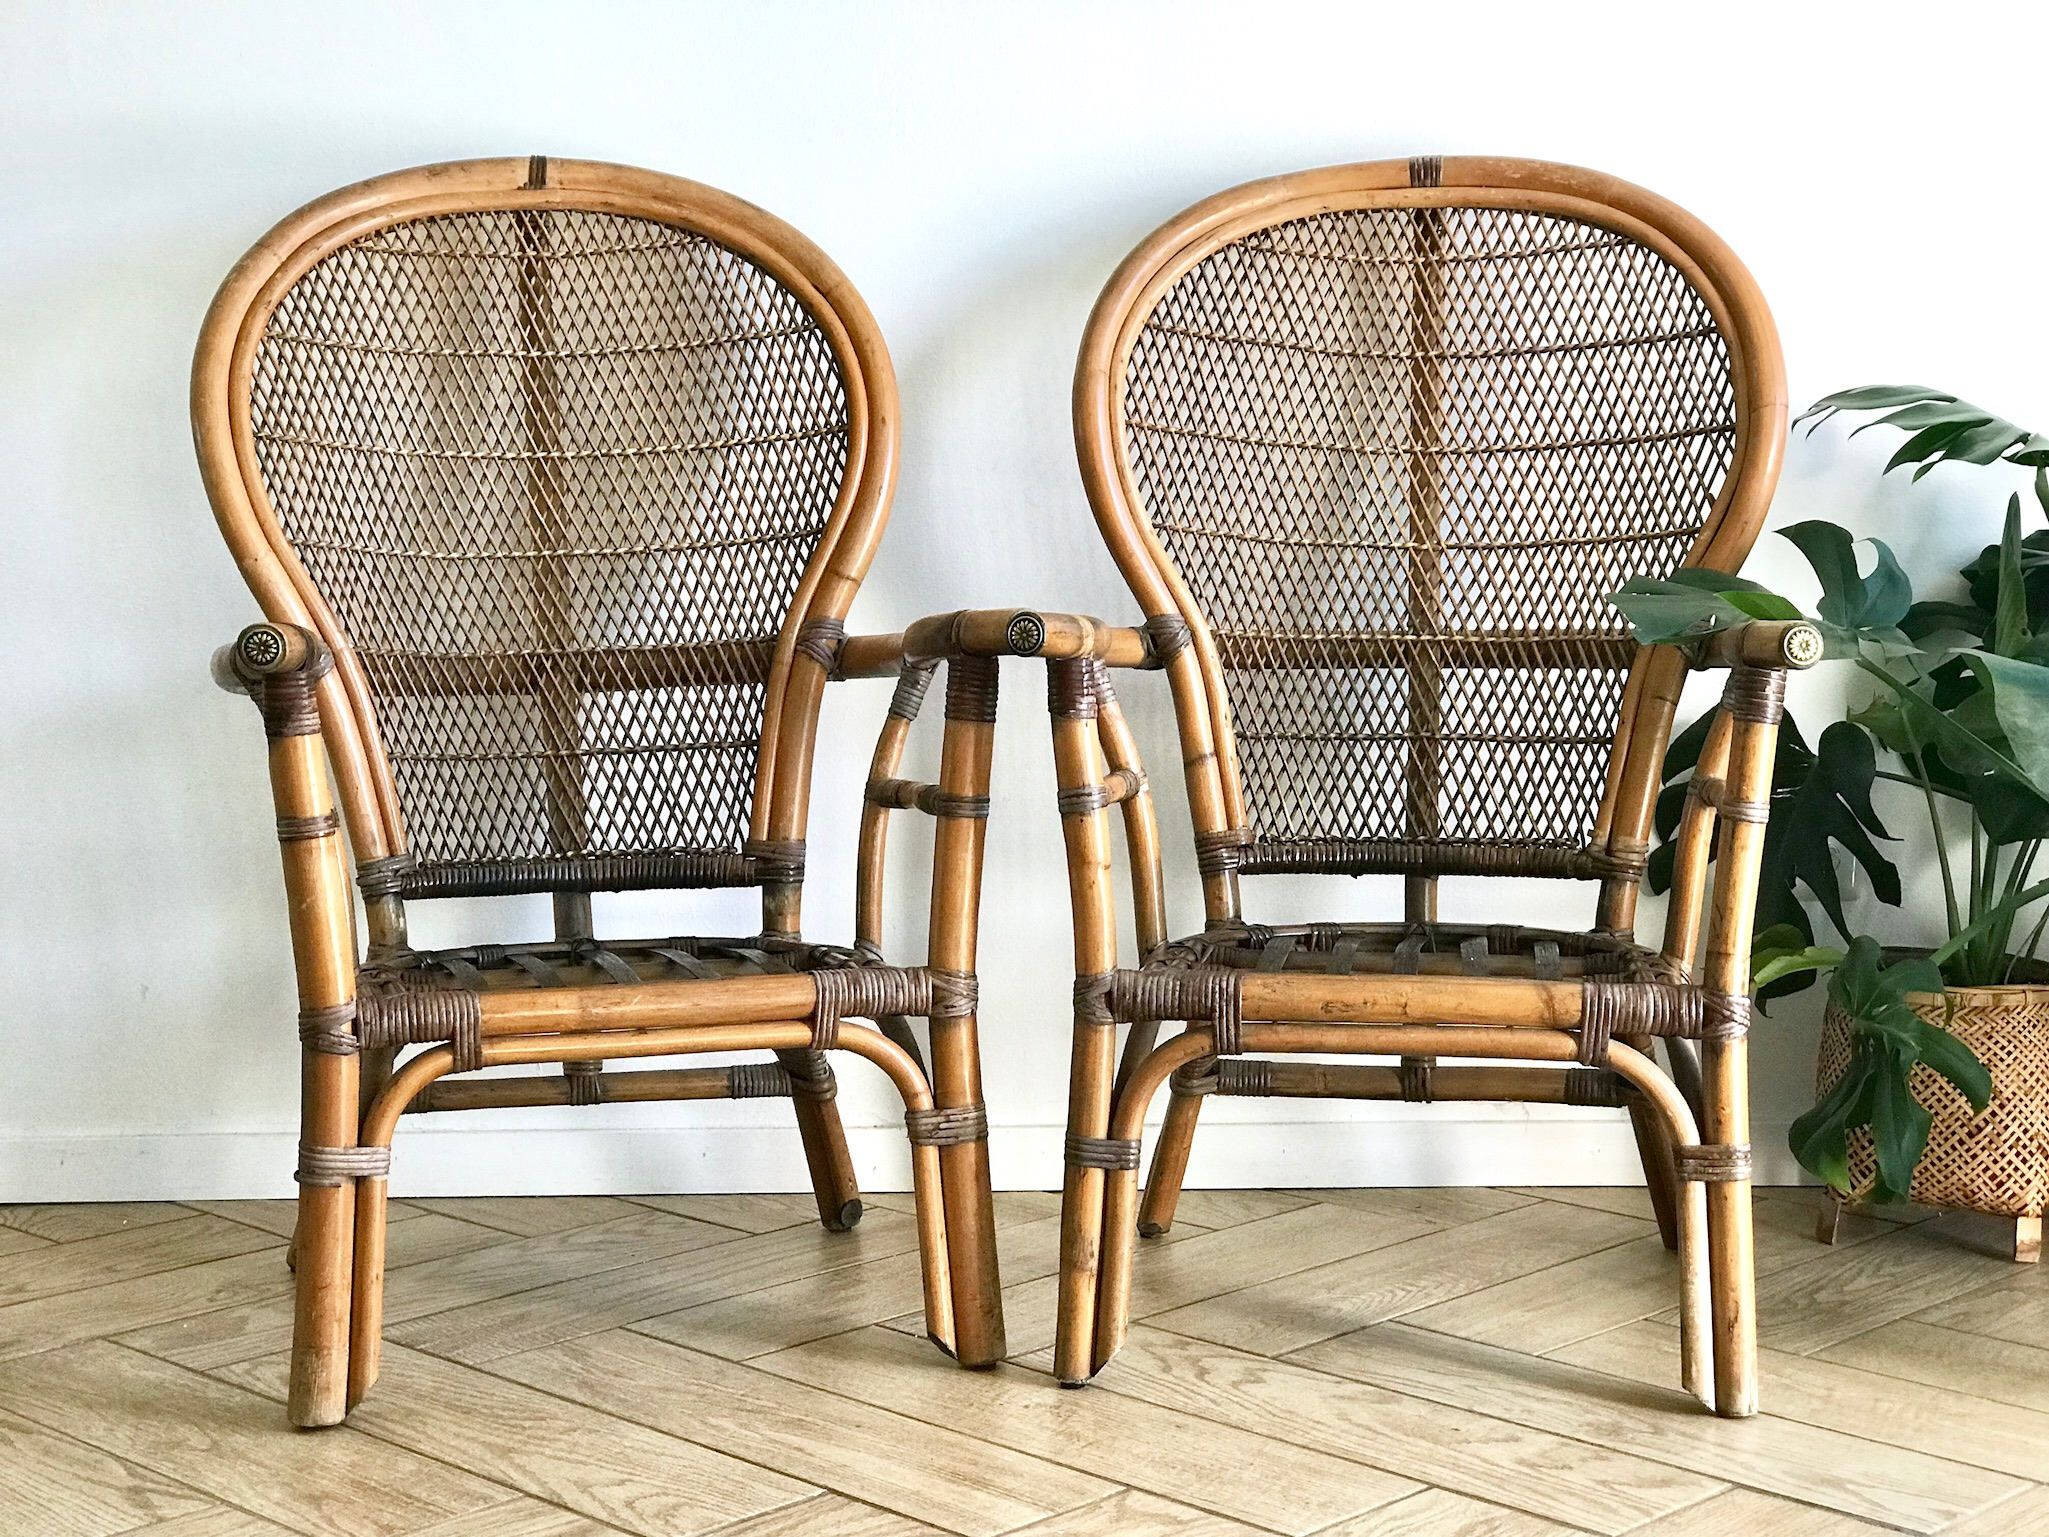 Fan Back Wicker Chair Office Workout Abs Set Of 2 Bamboo Chairs Rattan Dining